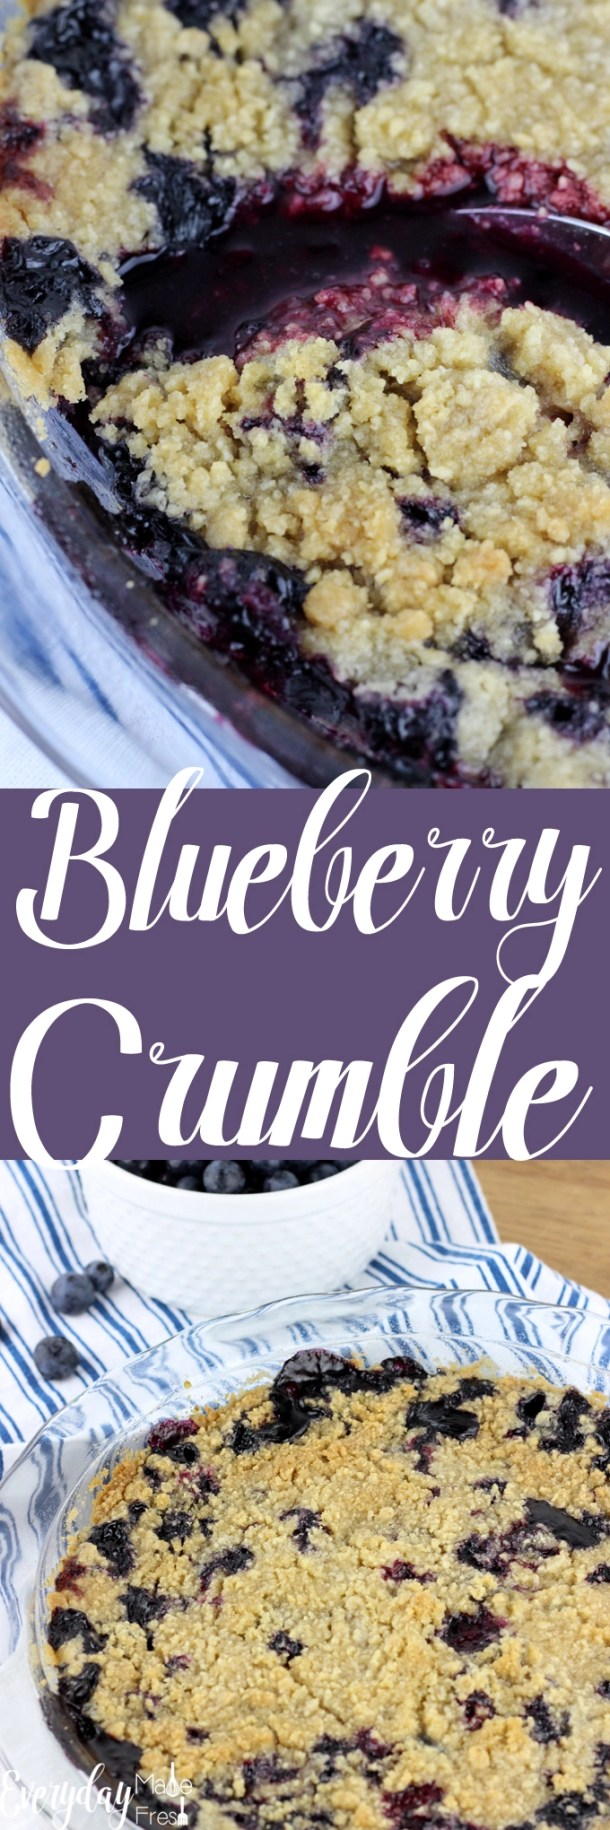 This sweet & simple Blueberry Crumble is the perfect treat for those summer blueberries. It's loaded with fresh blueberries and topped with an irresistible crunchy topping. | EverydayMadeFresh.com